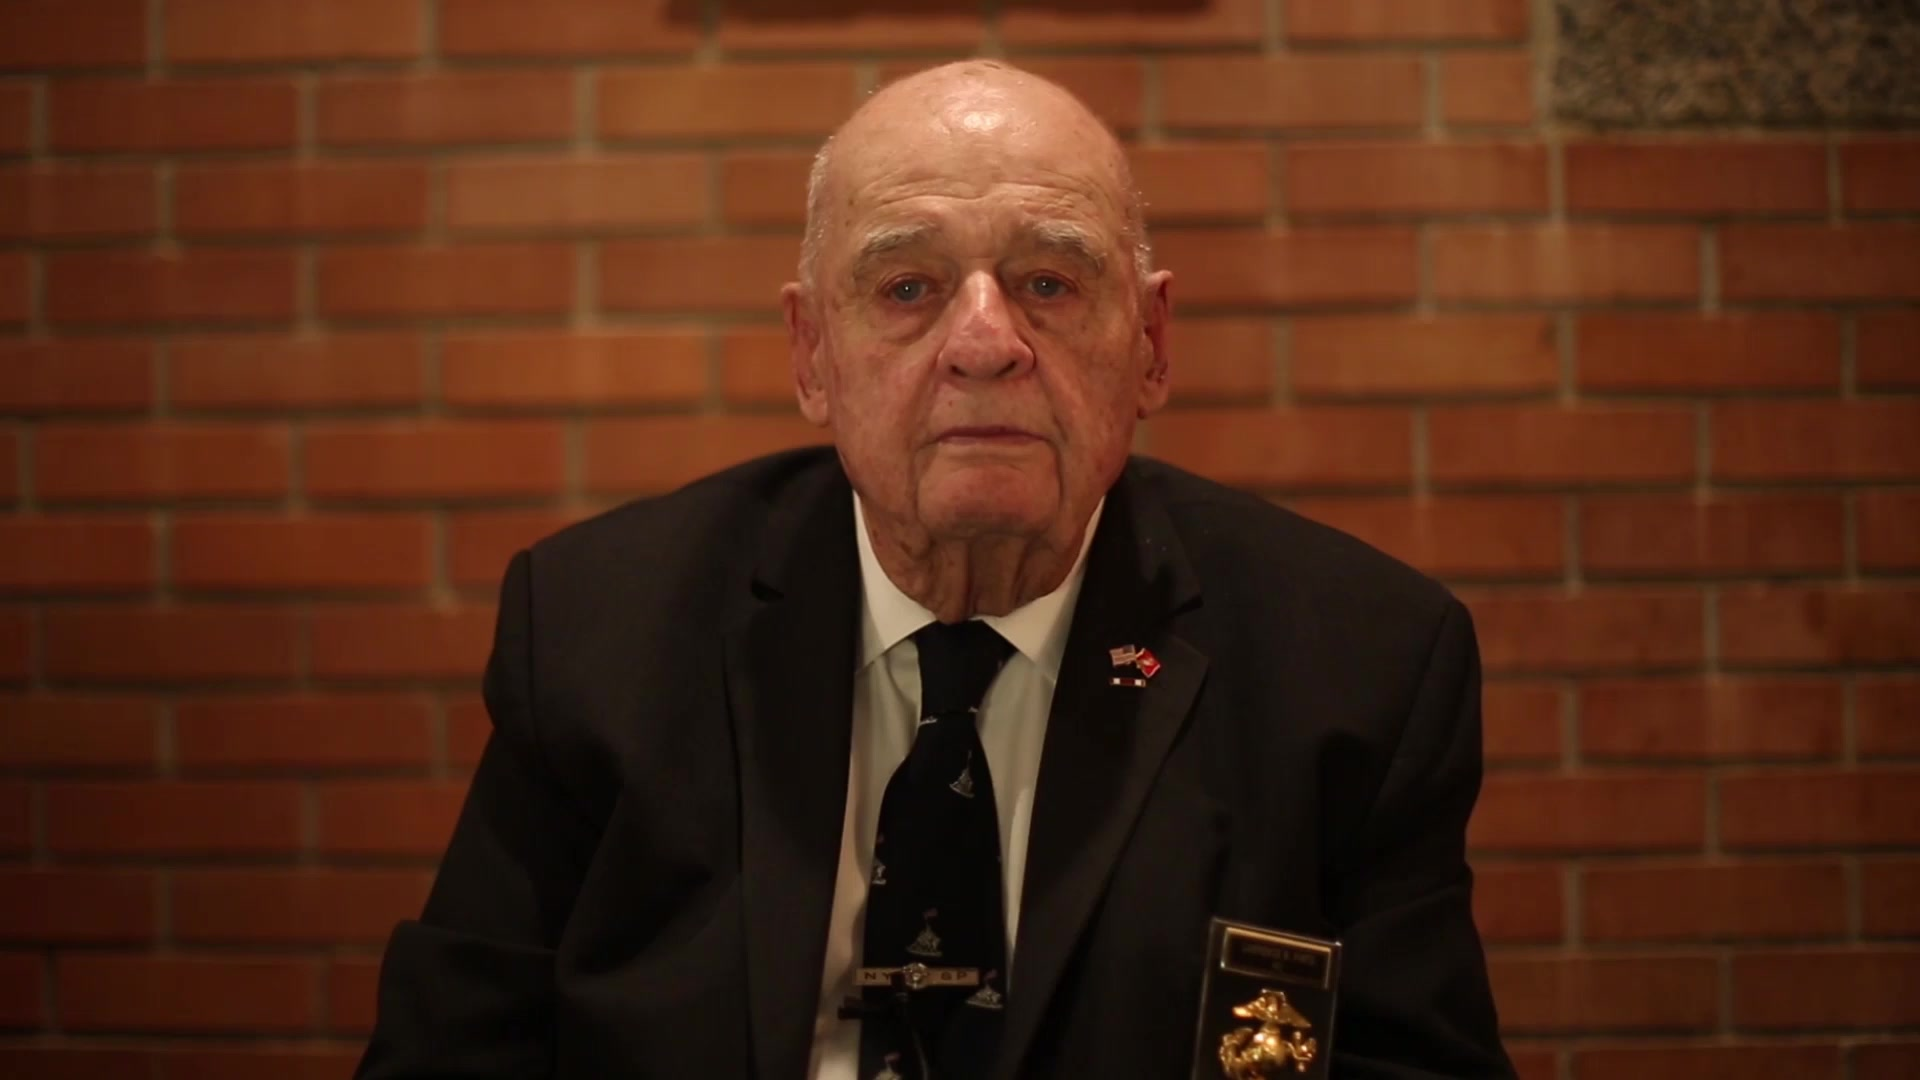 Angelo Ciota, Geoffrey Hart, Larry Pinto, and Jack Seiferth, veterans of the Battle of Iwo Jima, recall the events that took place during their time on the island 73 years ago. This video was shot to capture the experiences these veterans had during the Battle of Iwo Jima. This was shot in New York, New York on Mar. 1, 2018.